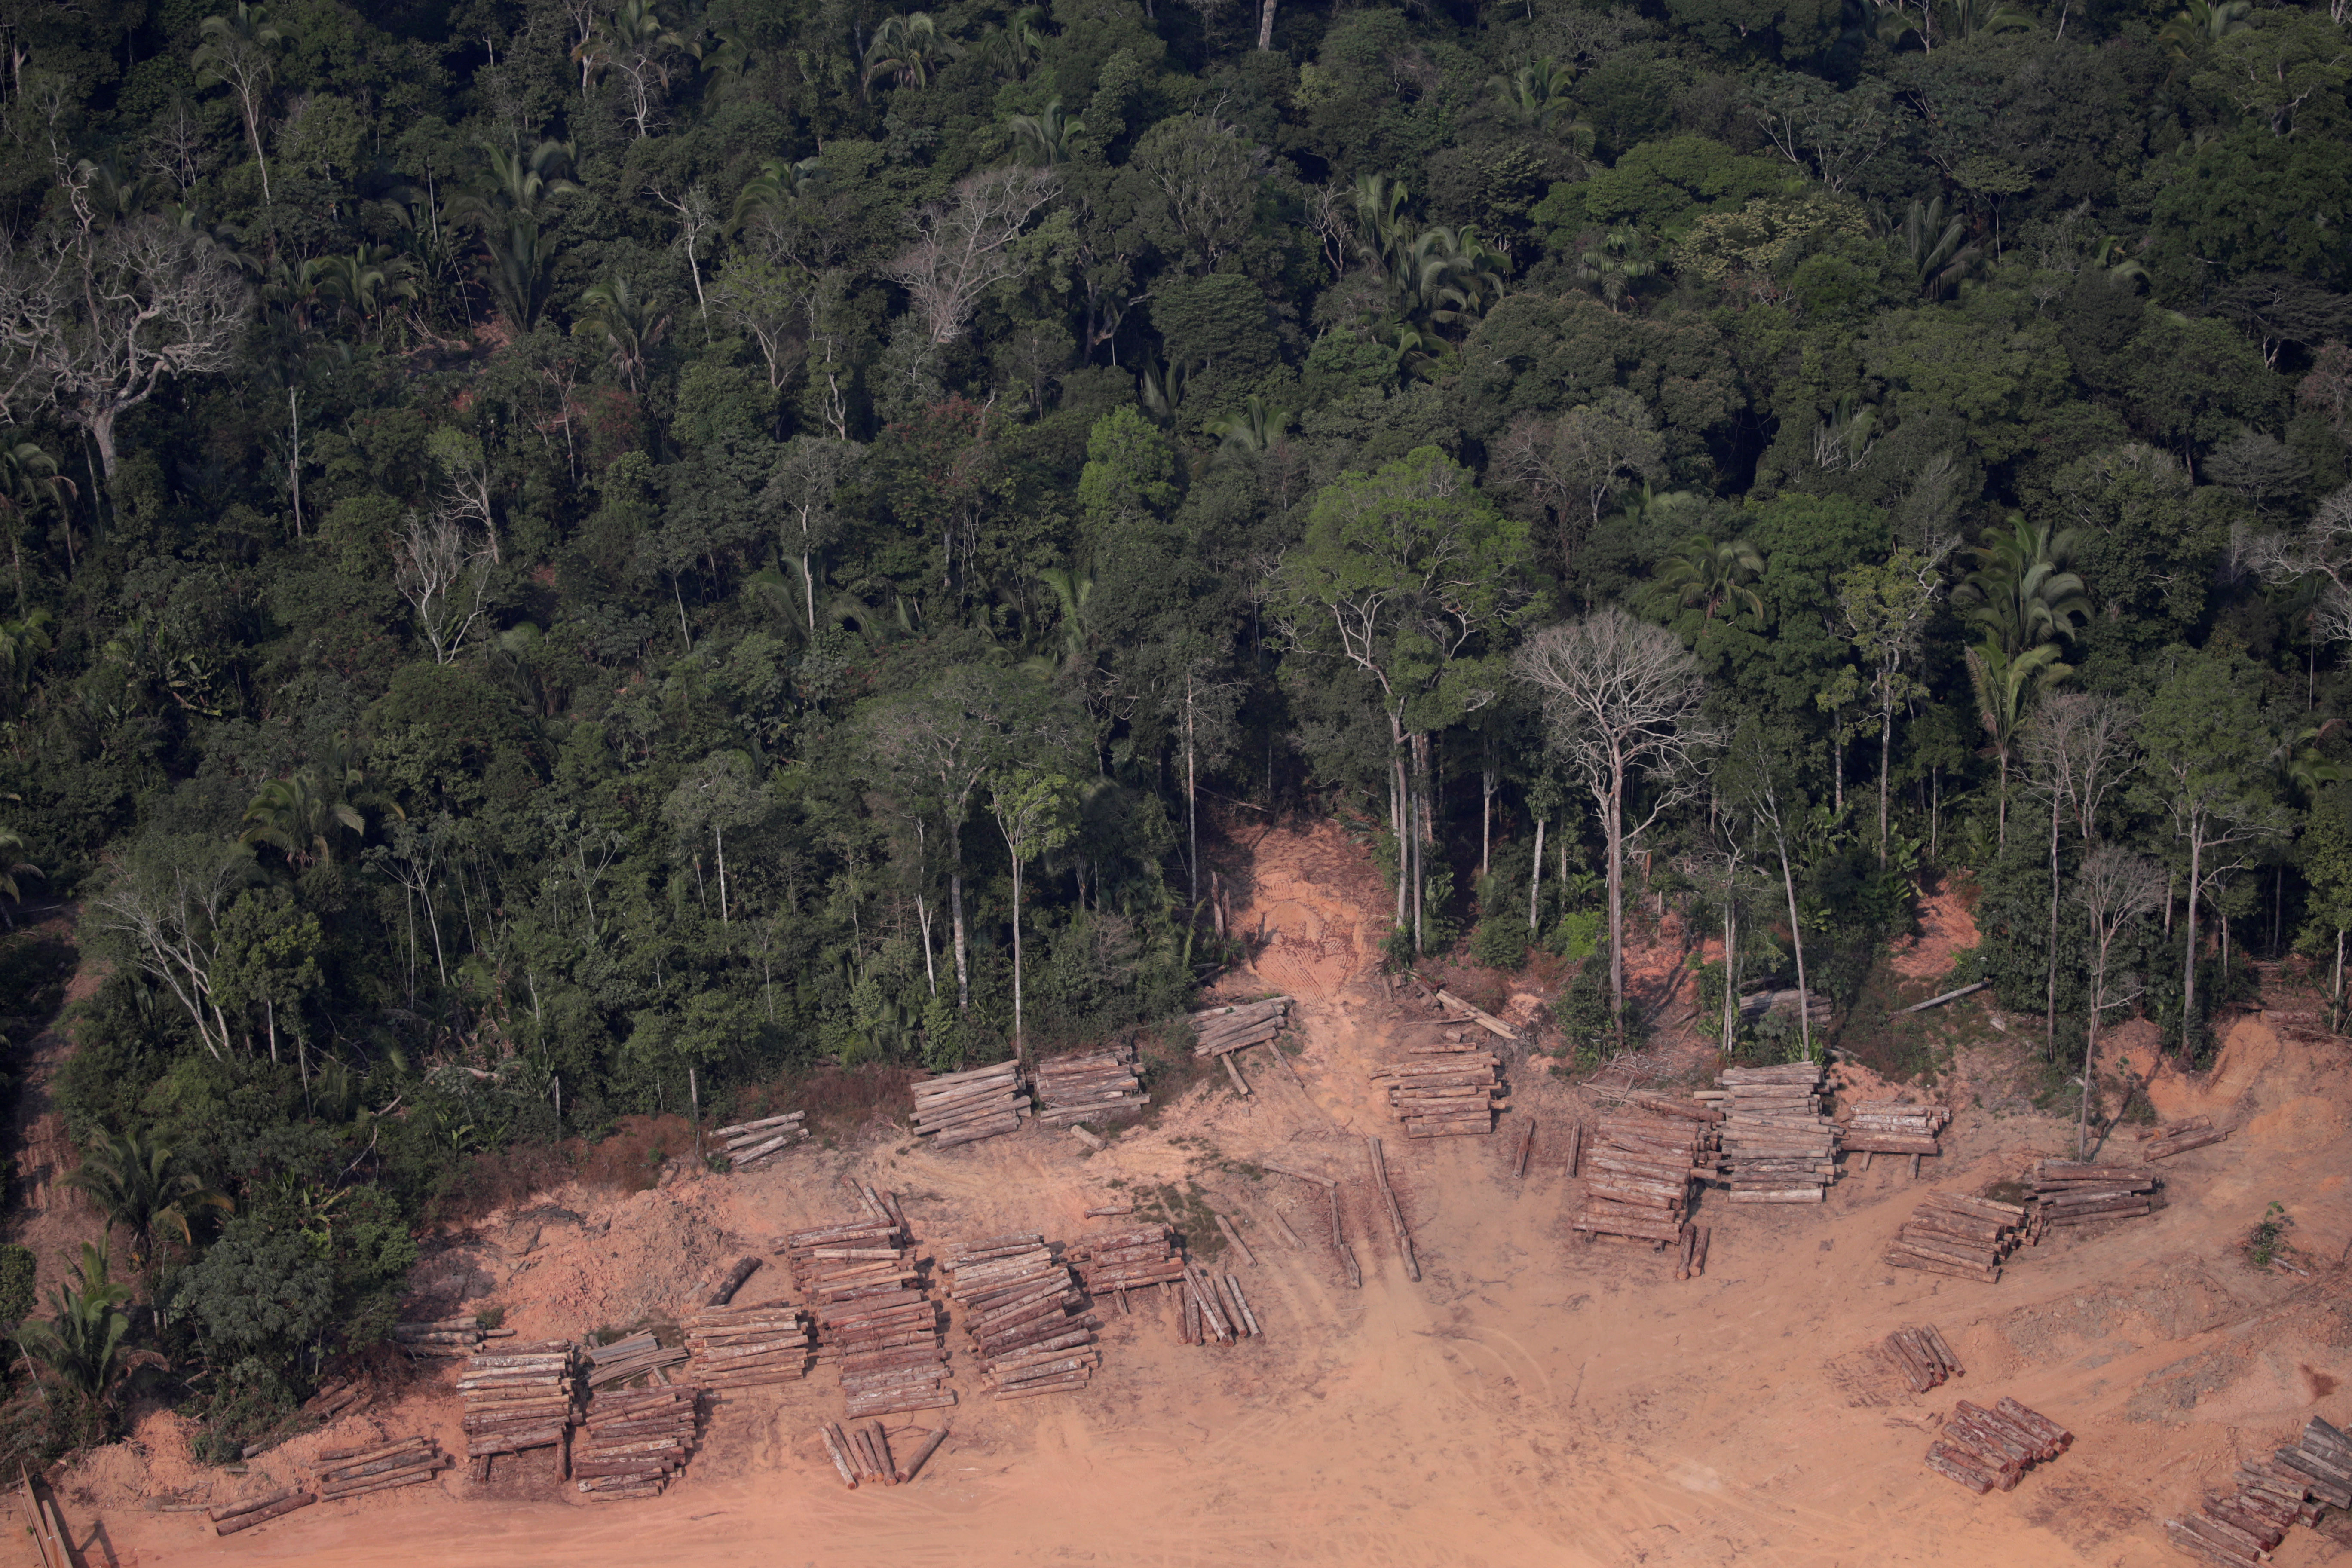 An aerial view of logs illegally cut from Amazon rainforest are seen in sawmills near Humaita, Amazonas State, Brazil August 22, 2019. REUTERS/Ueslei Marcelino - RC1B4AADB7D0